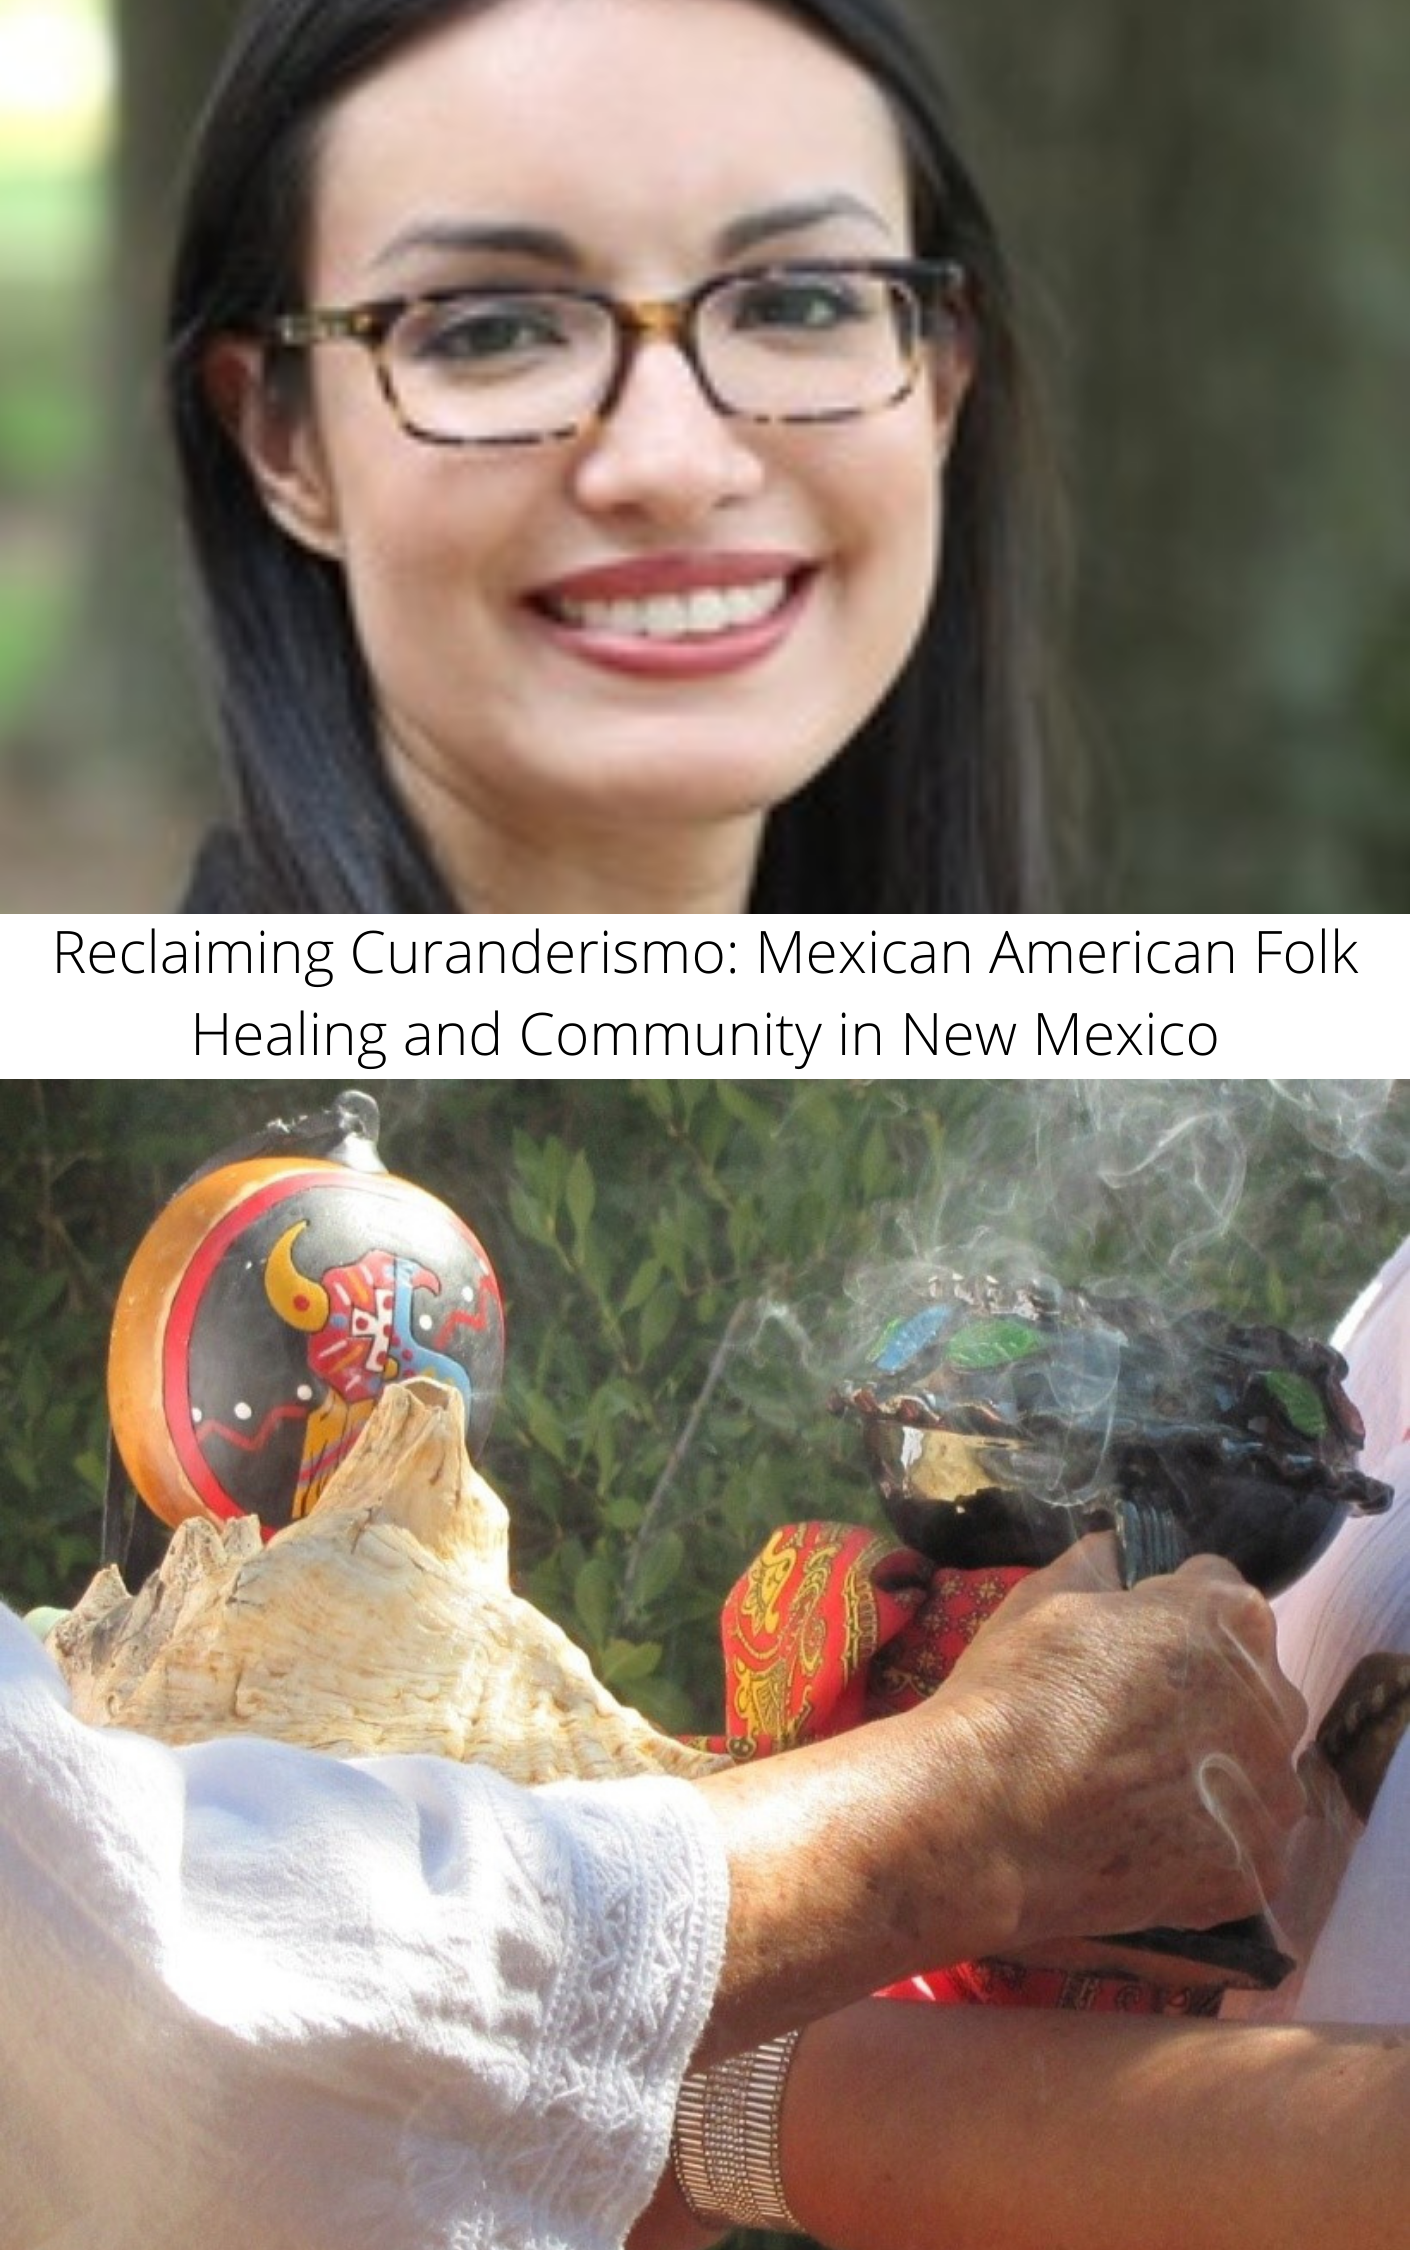 Reclaiming Curanderismo: Mexican American Folk Healing and Community in New Mexico